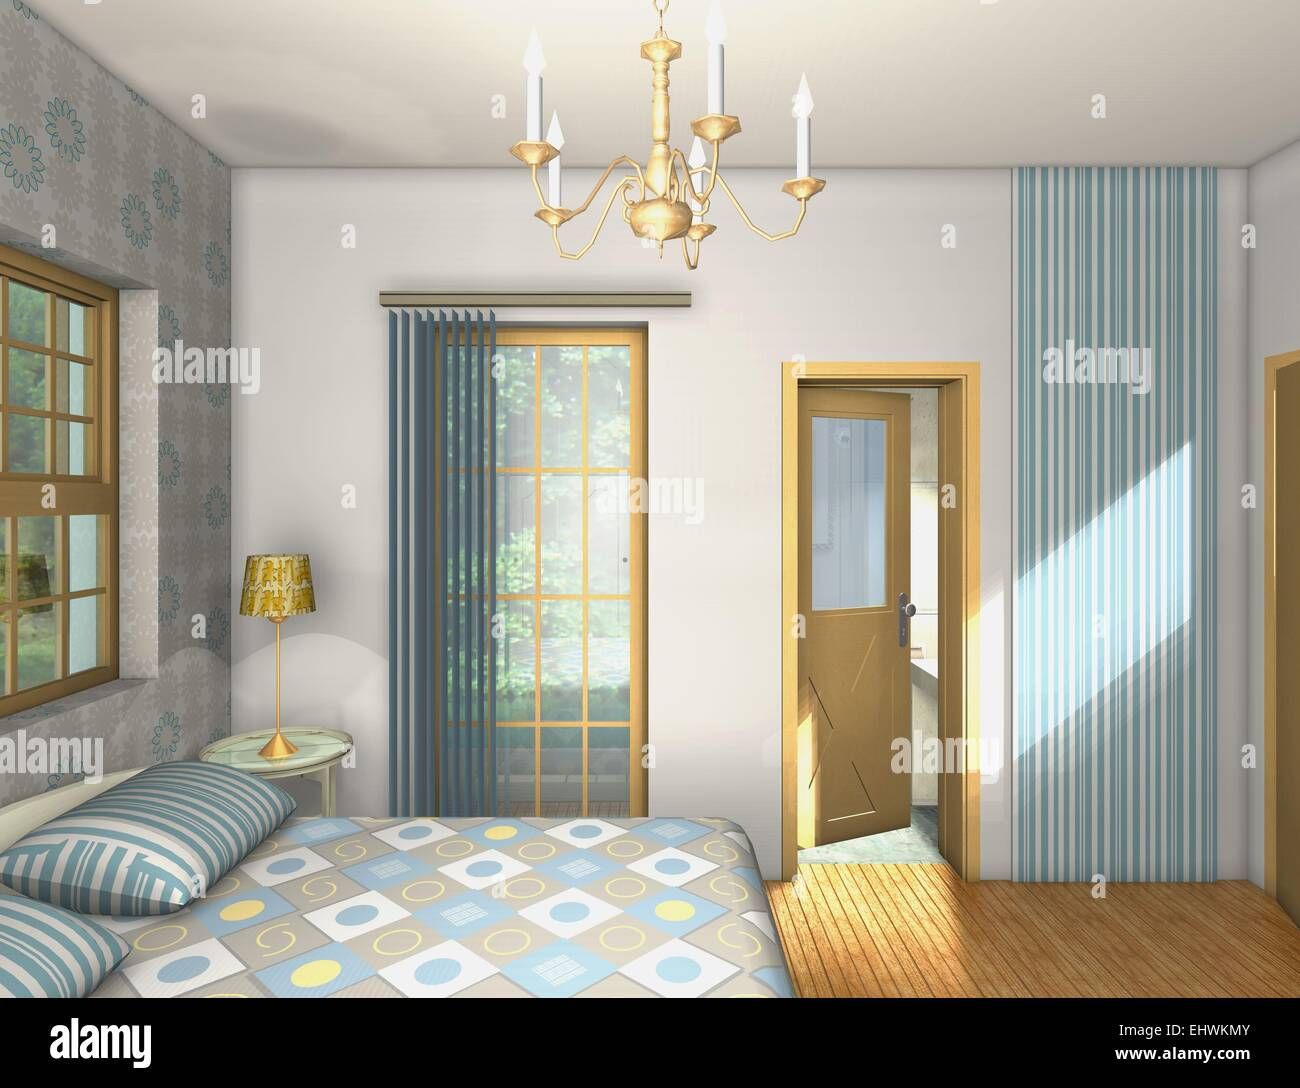 Mix and match colors,shapes,materials in classic master bedroom Stock Photo